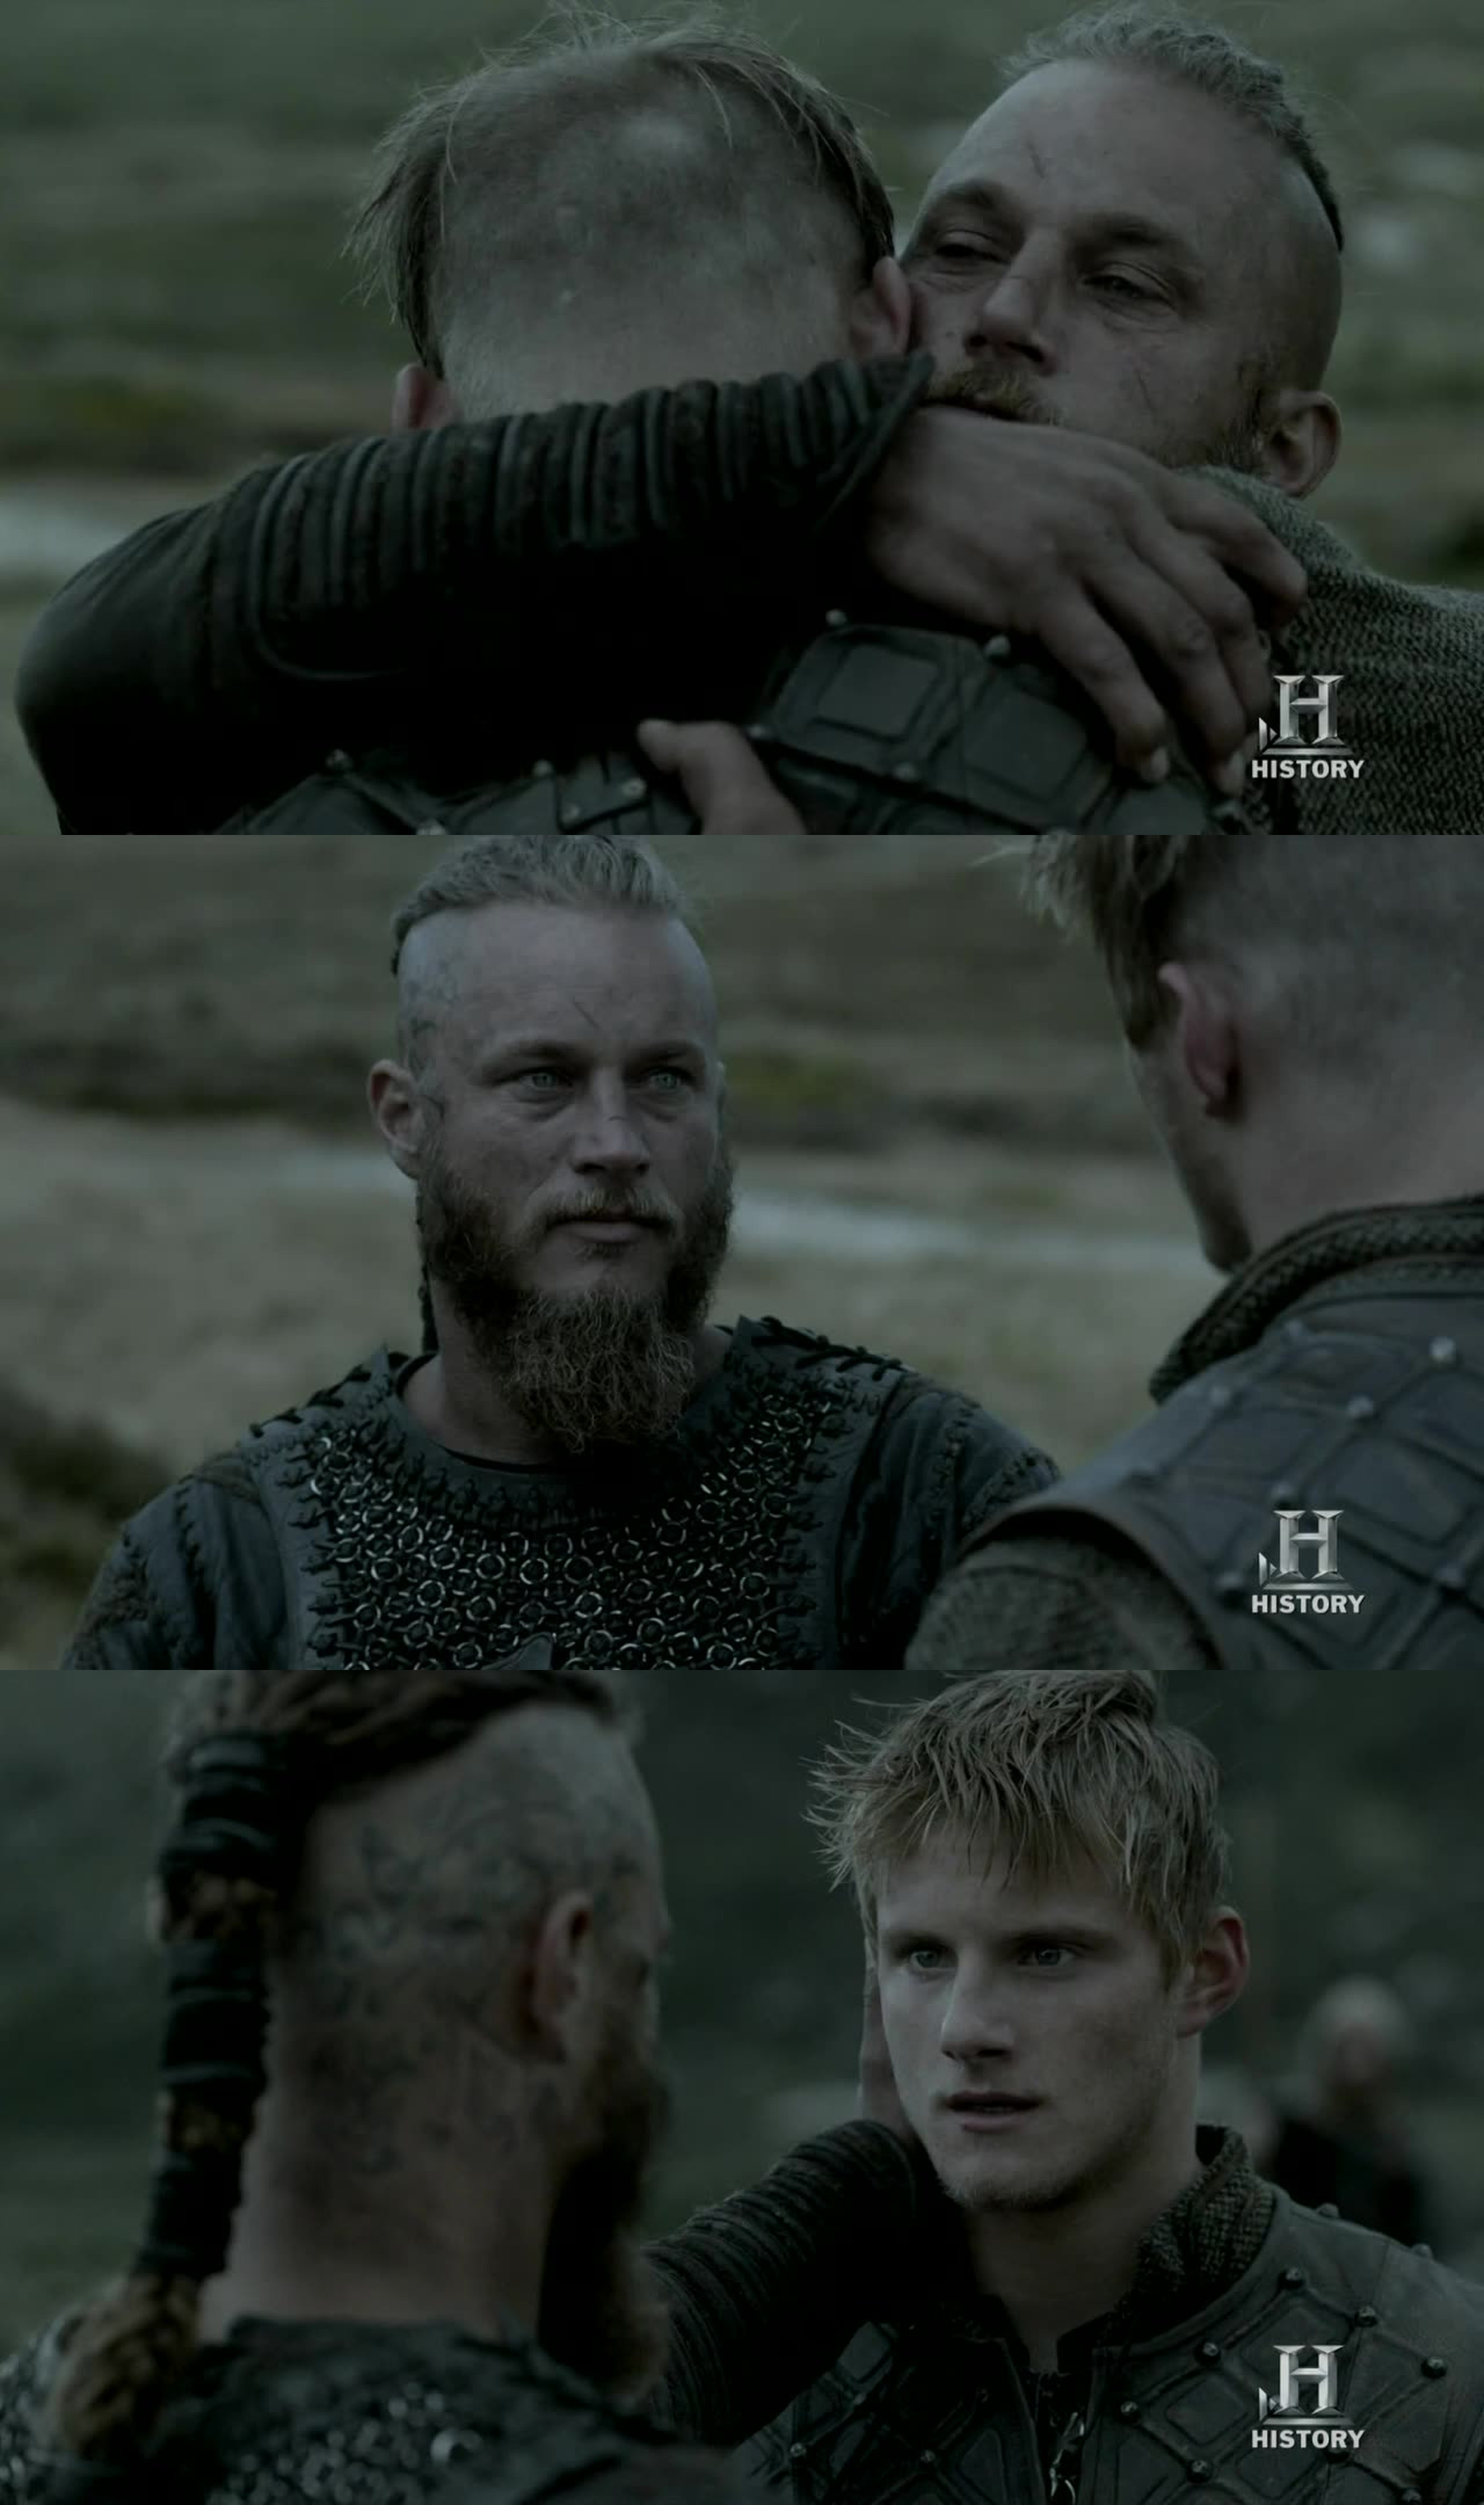 father and son, back together!!! Best scene...